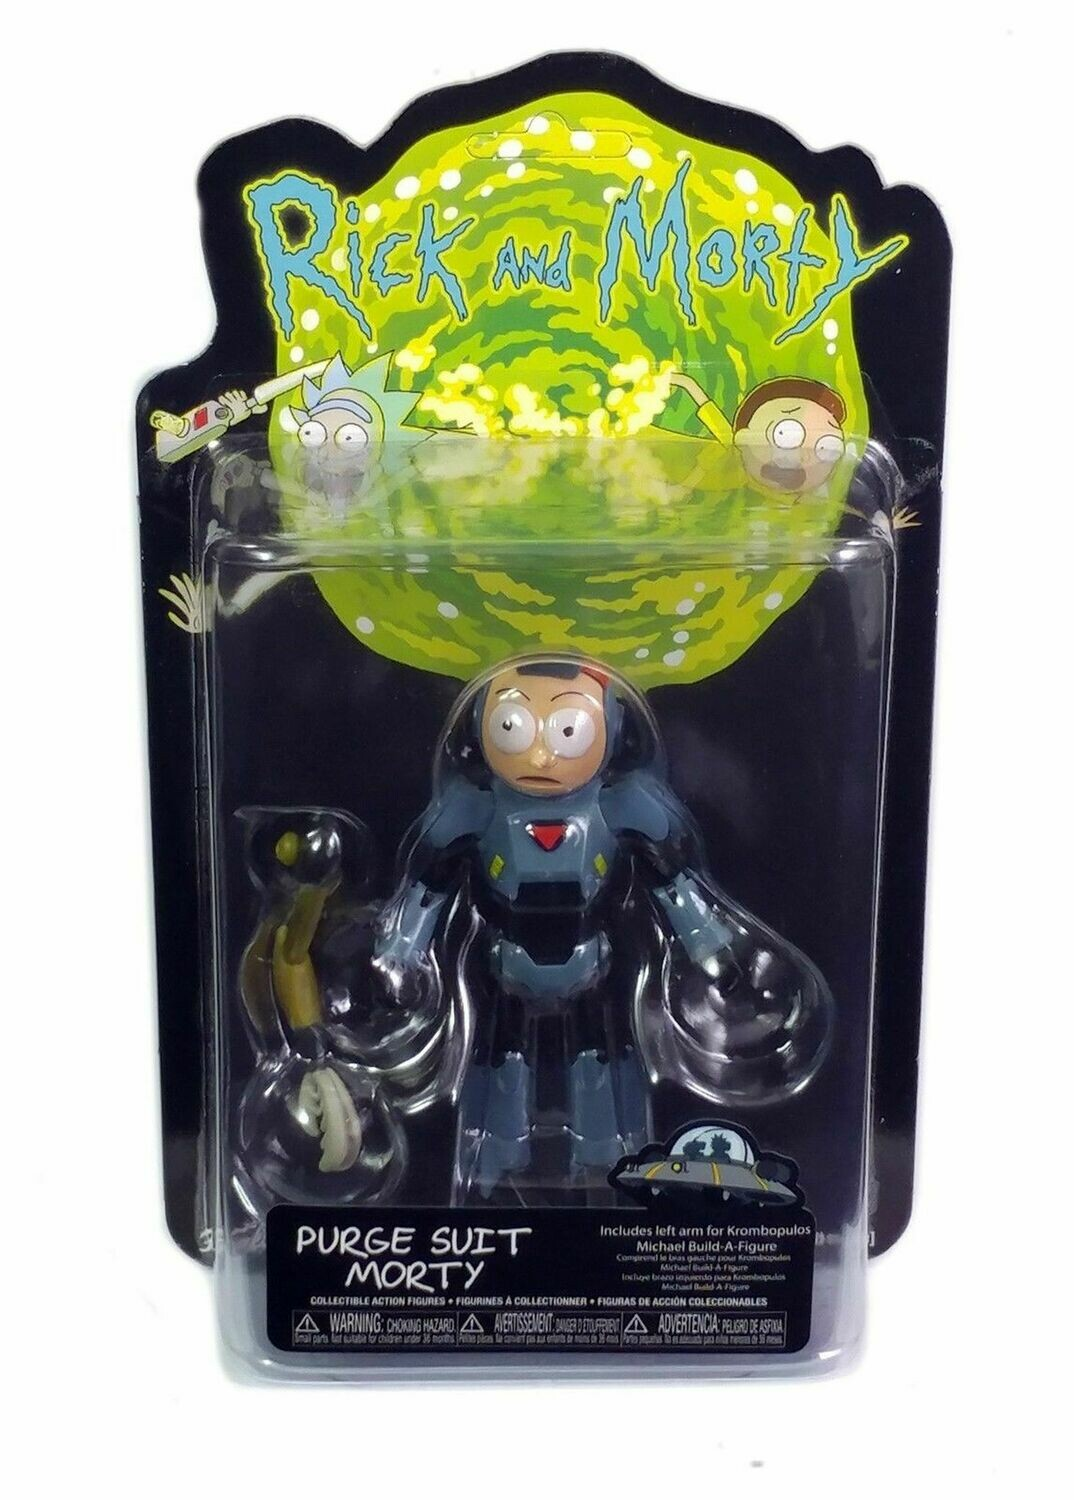 Rick And Morty Purge Suit Morty Figure